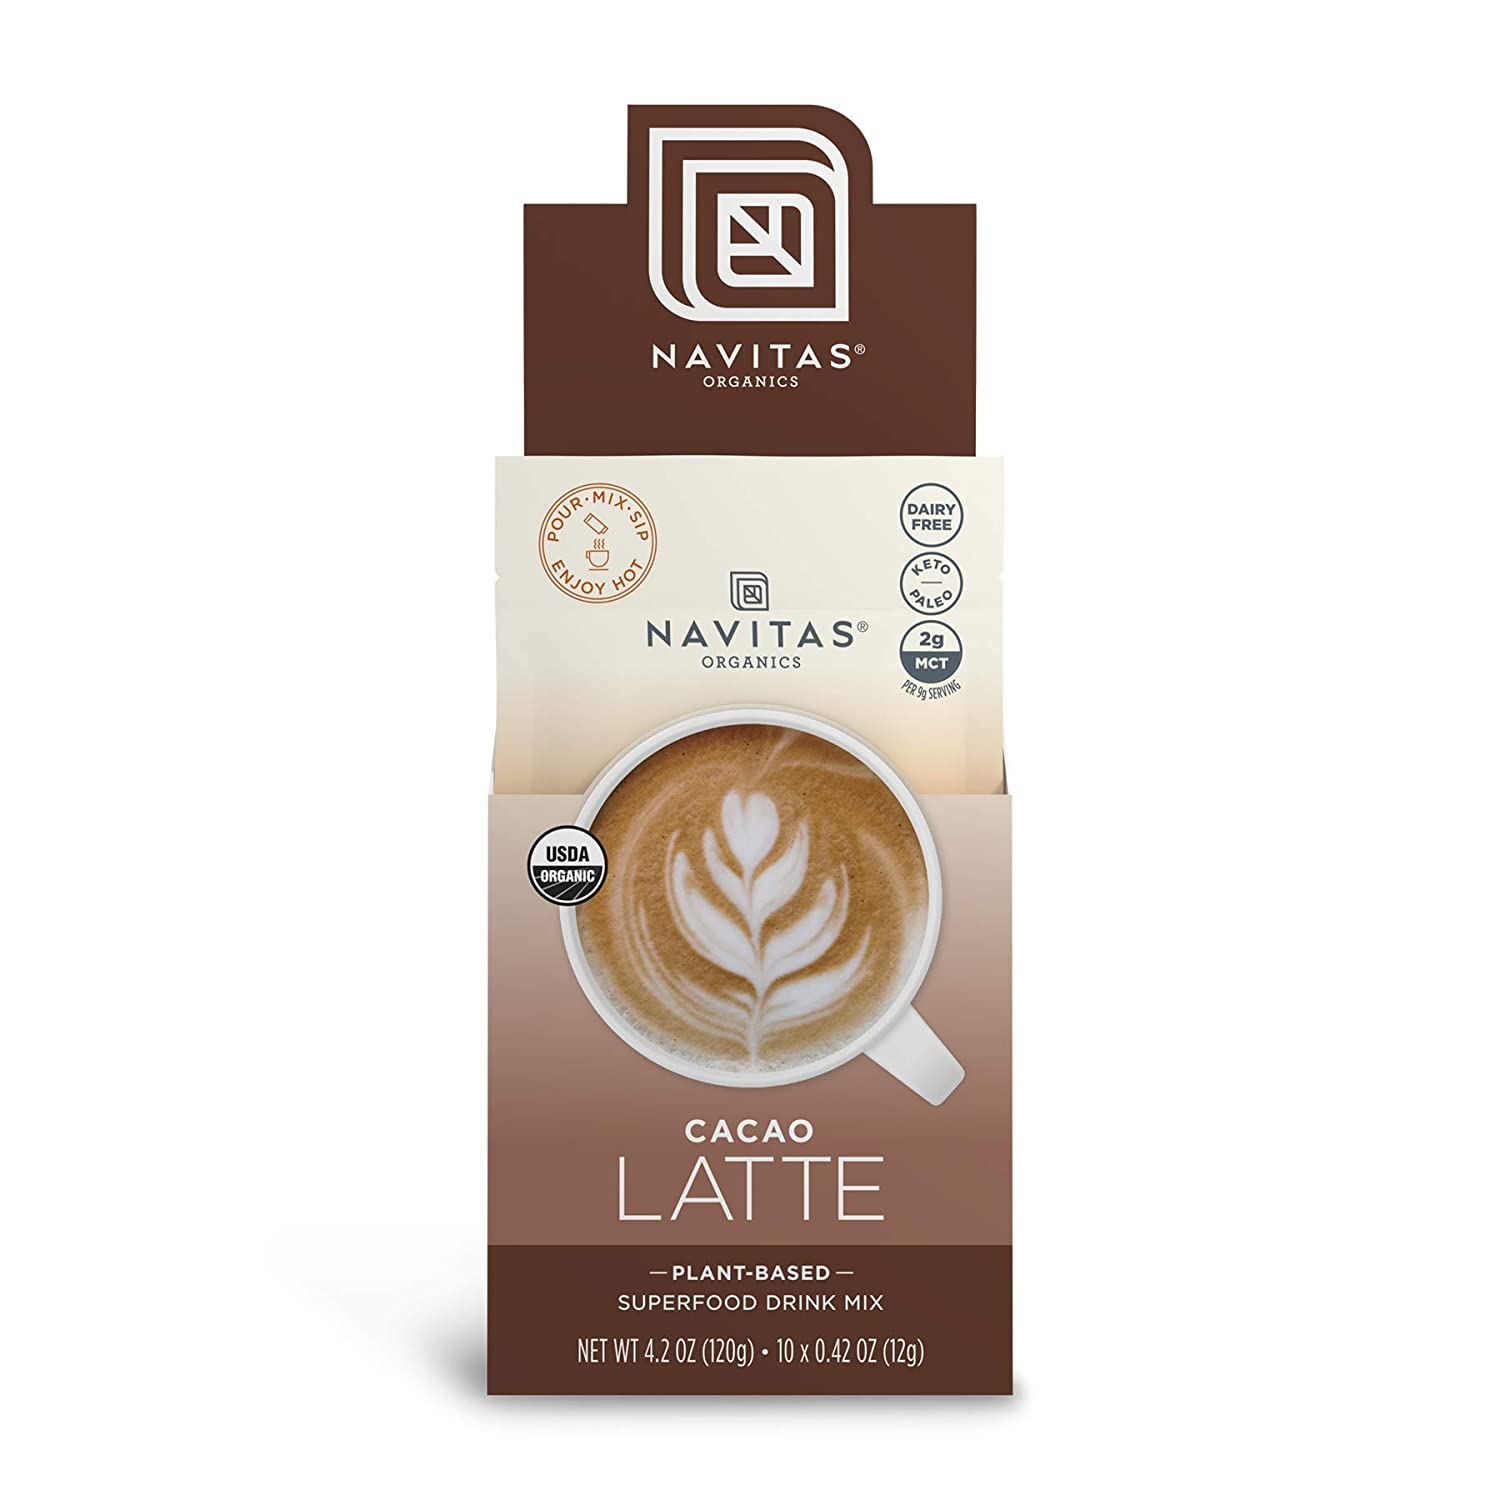 Navitas Organics Cacao Latte 25% OFF 4.2 Servings Single Genuine Free Shipping 10 oz. Pouch